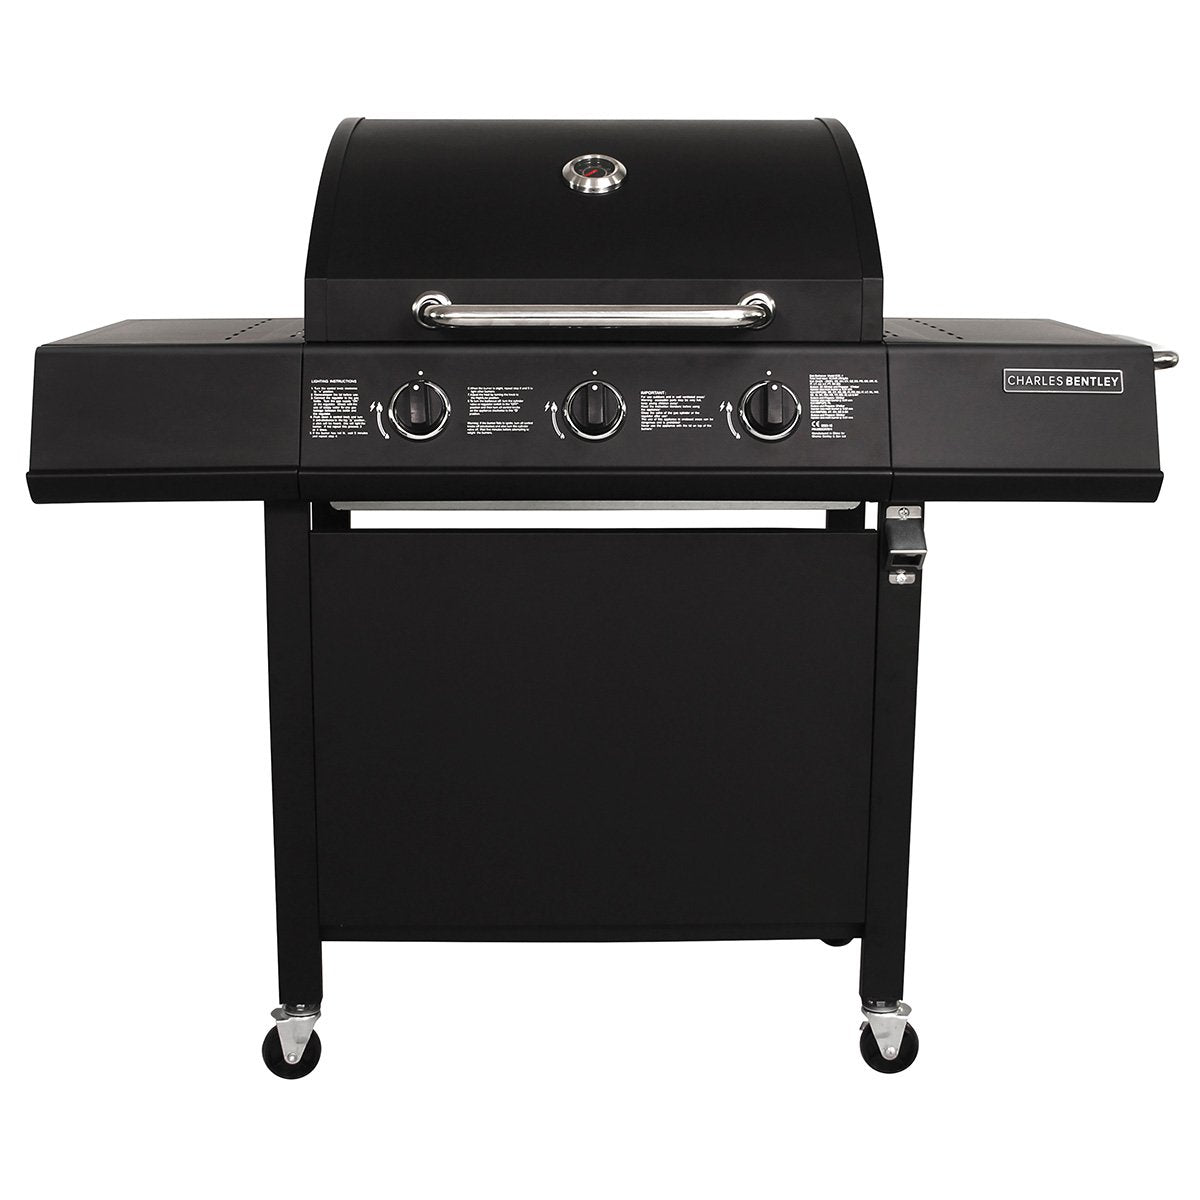 Charles Bentley Stainless Steel 3 Burner Gas BBQ Grill ...